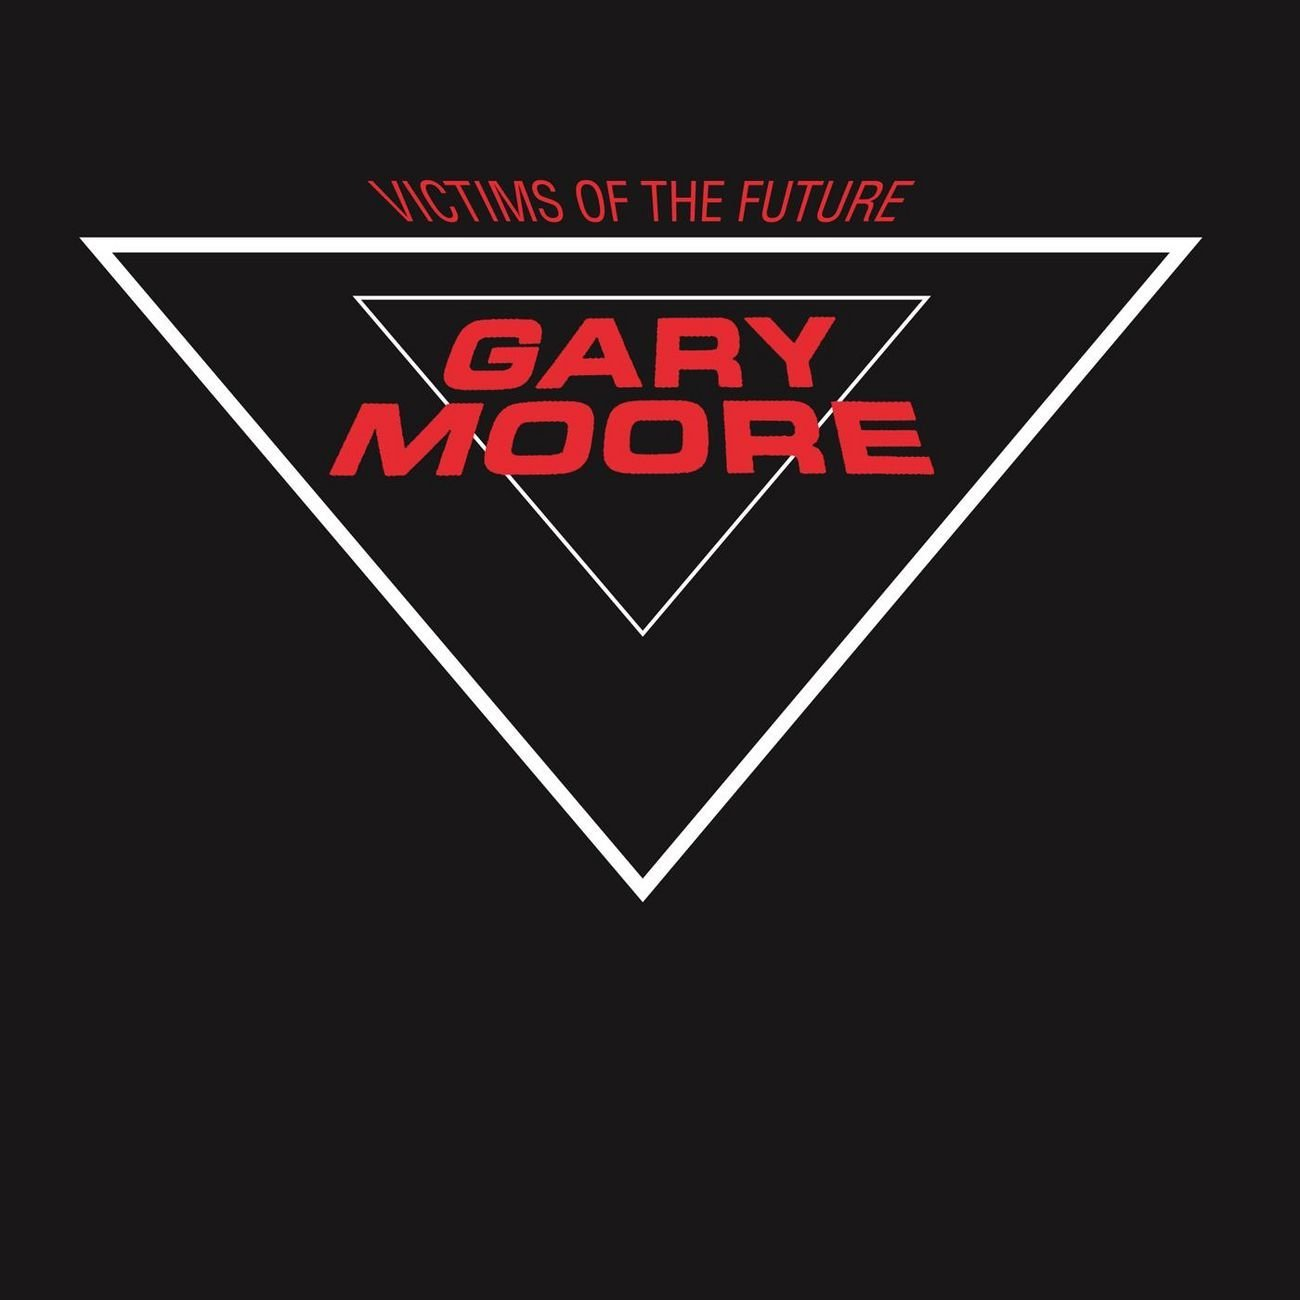 GARY MOORE Victims Of The Future reviews and MP3